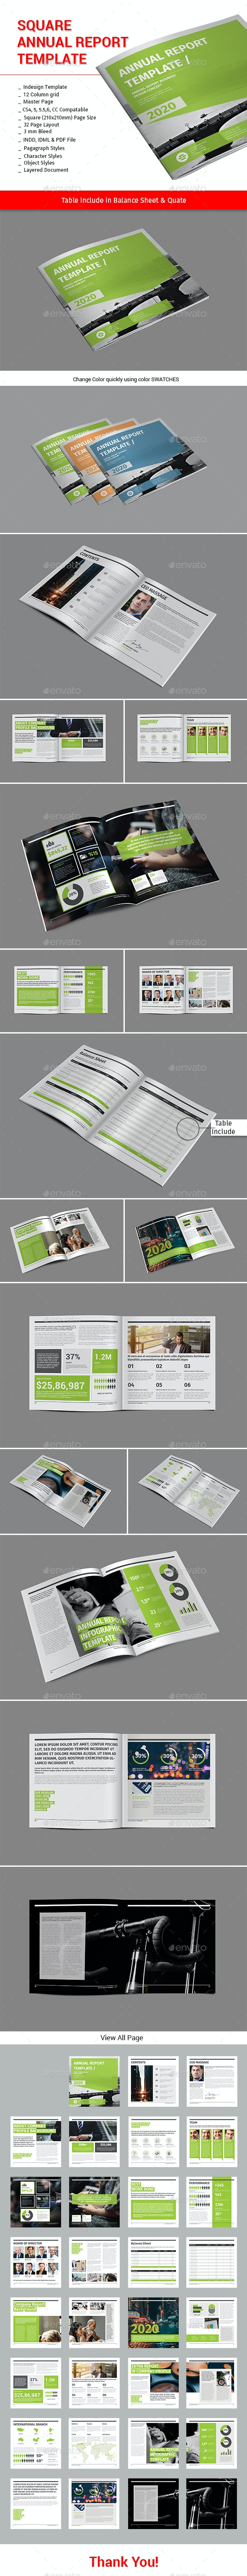 Square Annual Report Template - Informational Brochures